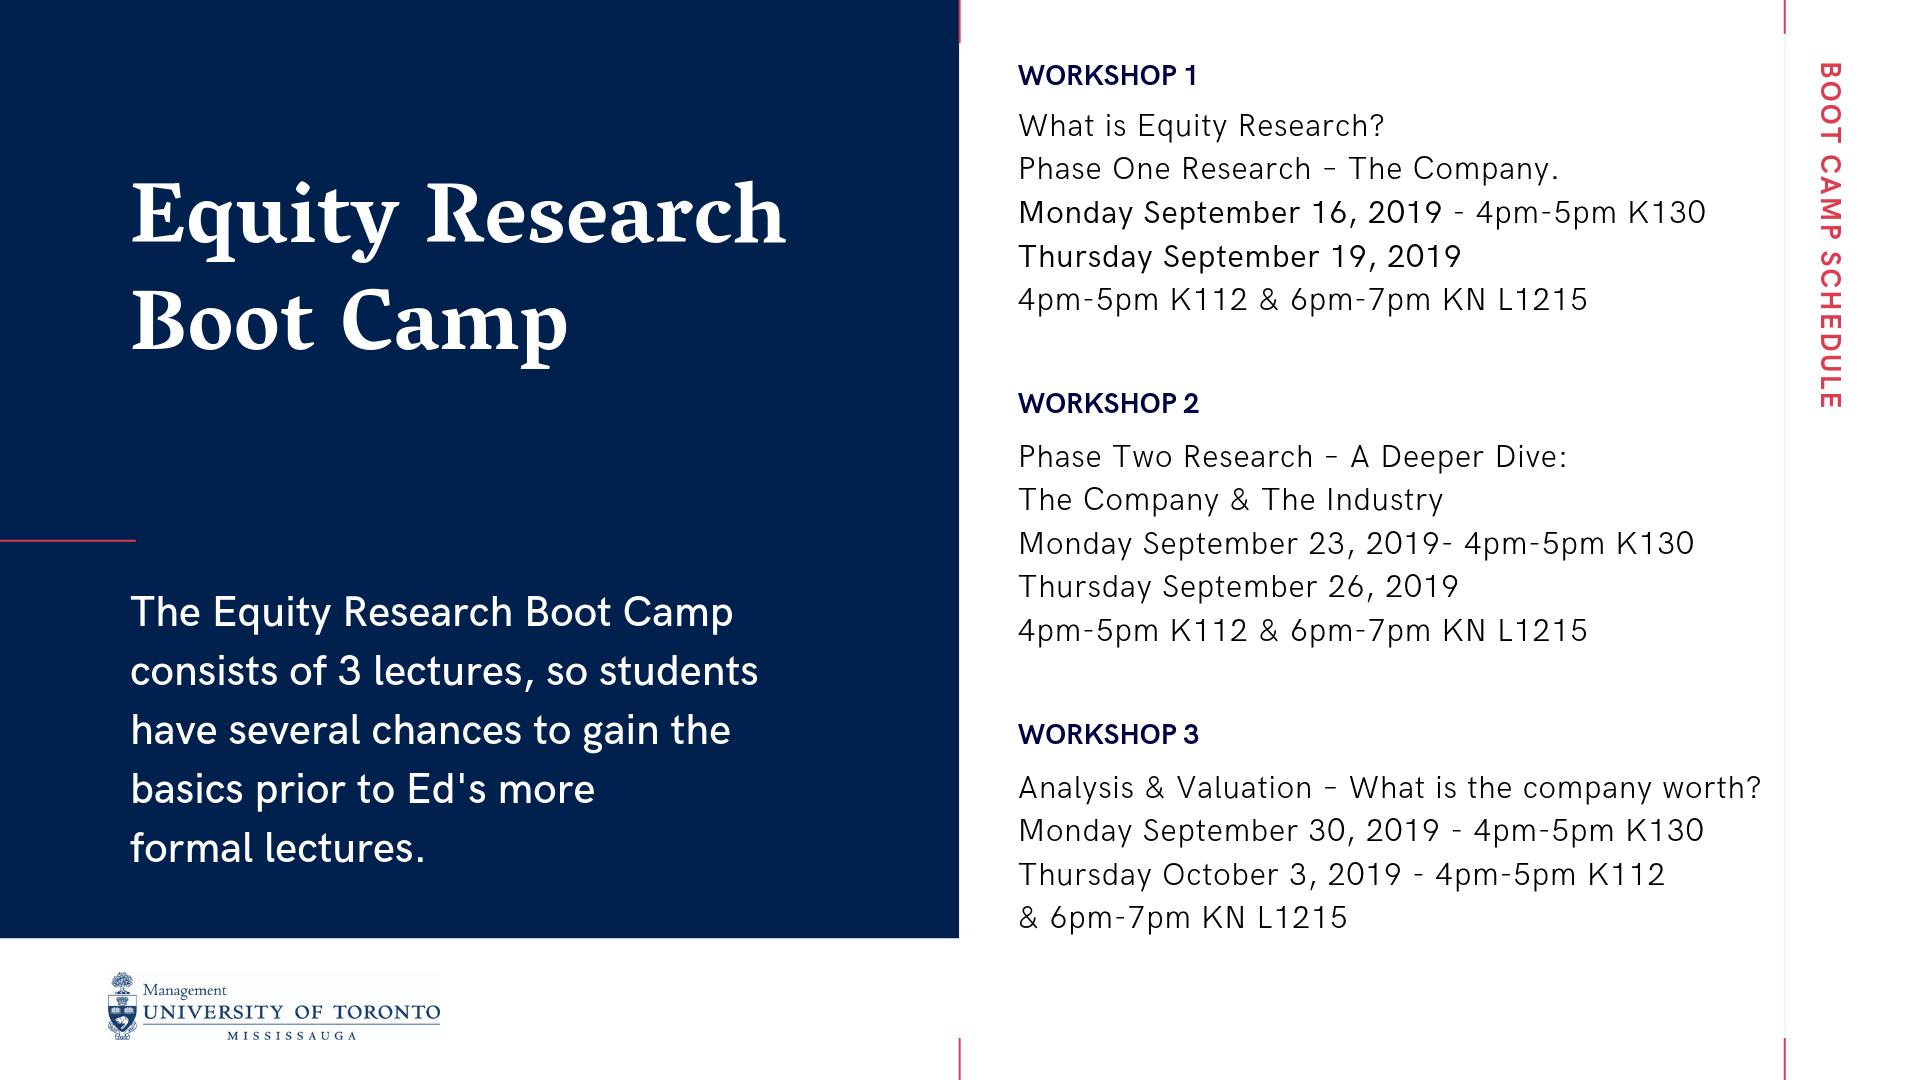 Equity research boot camp